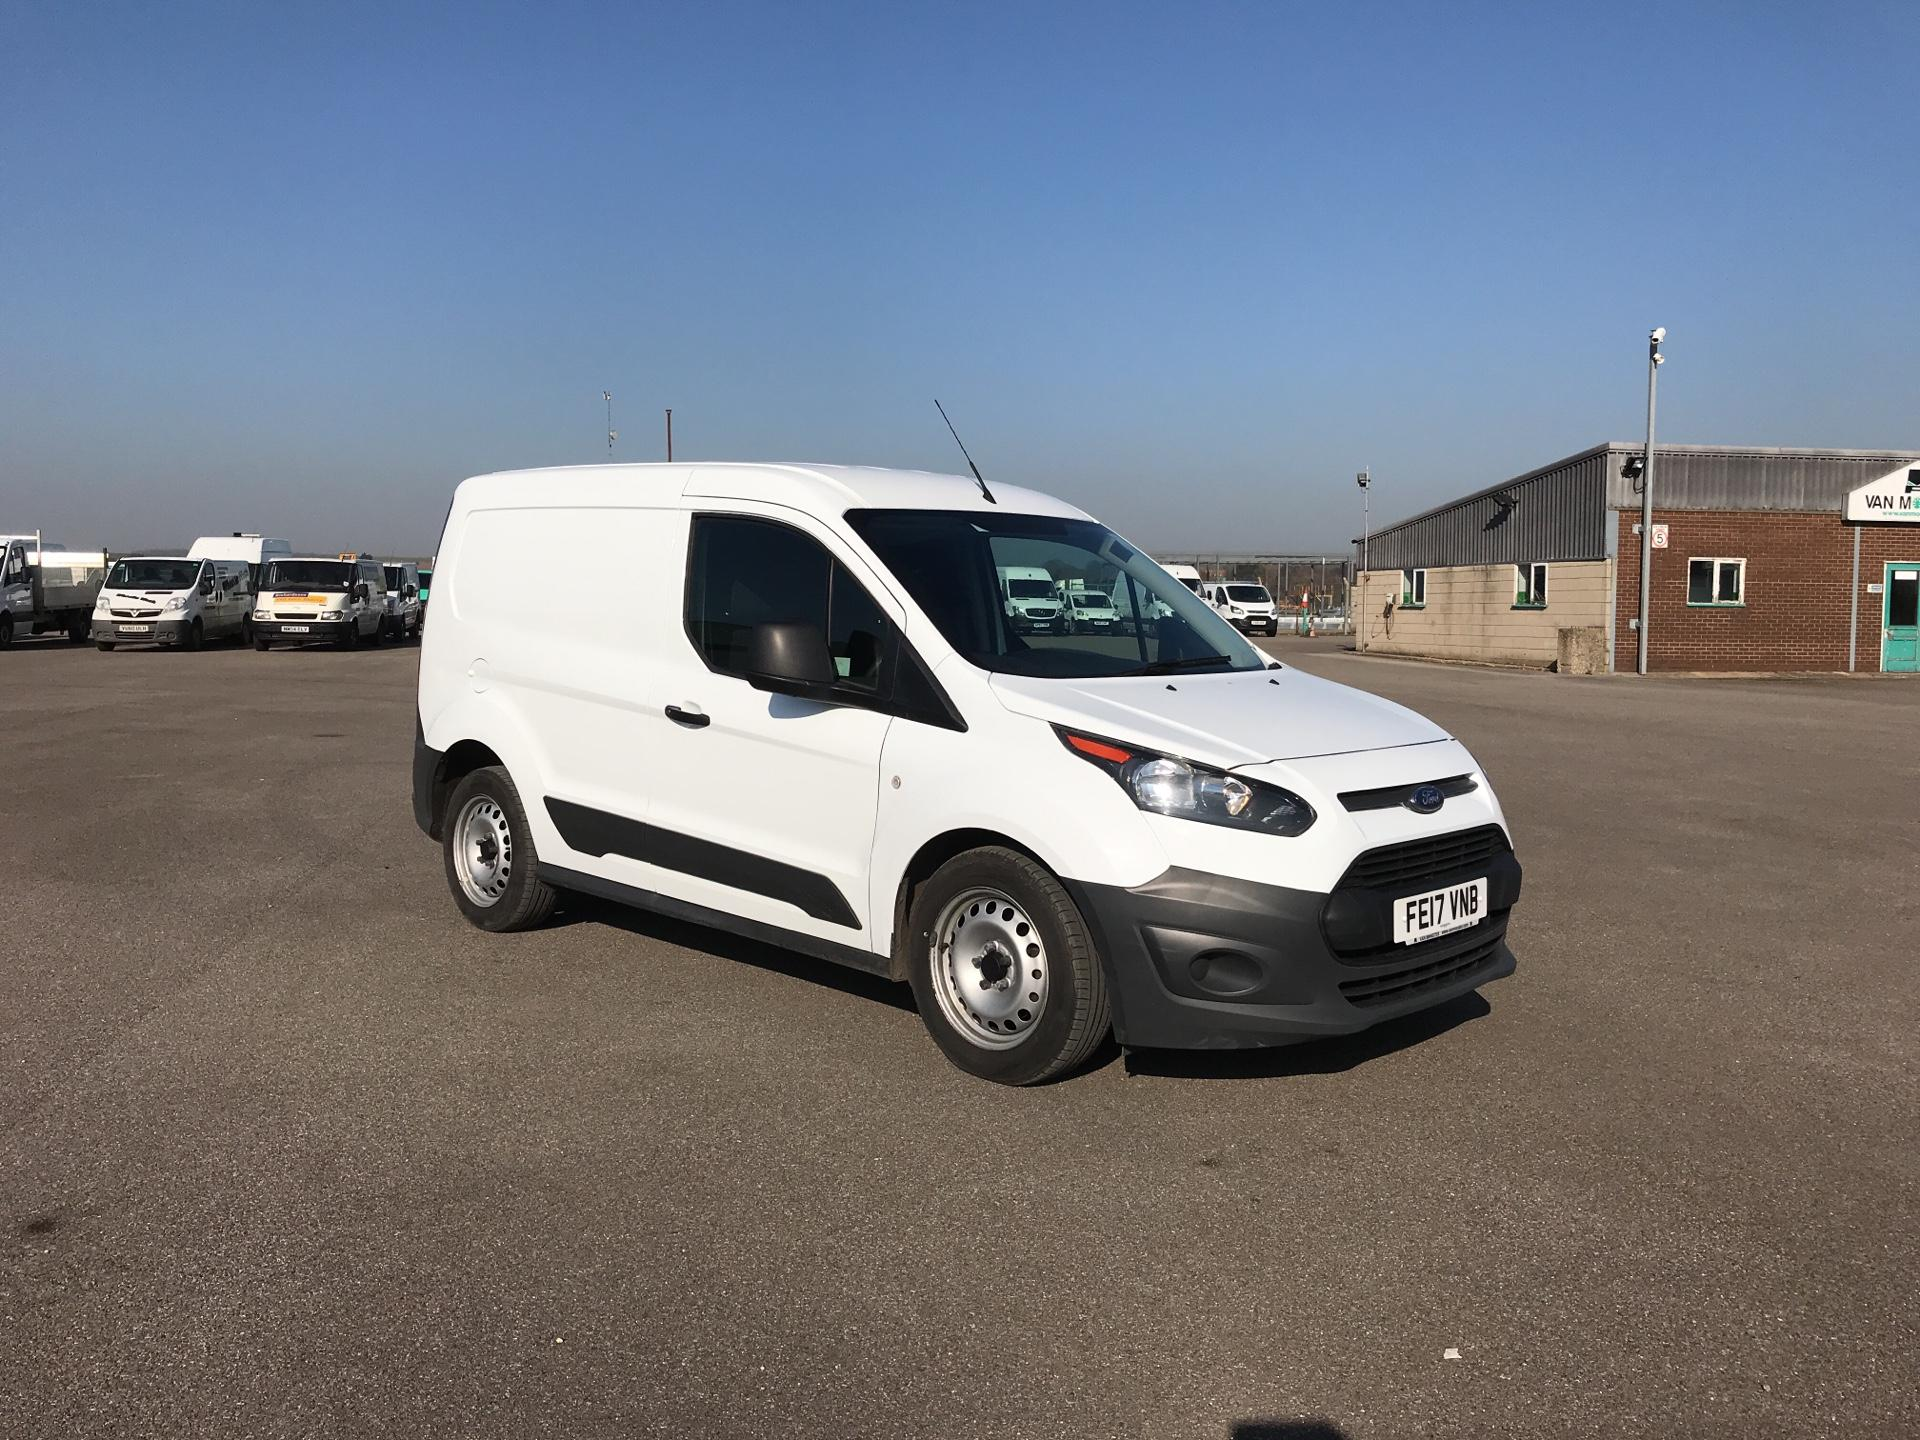 2017 Ford Transit Connect 200 L1 DIESEL 1.5 TDCI 75PS VAN EURO 6 (FE17VNB)